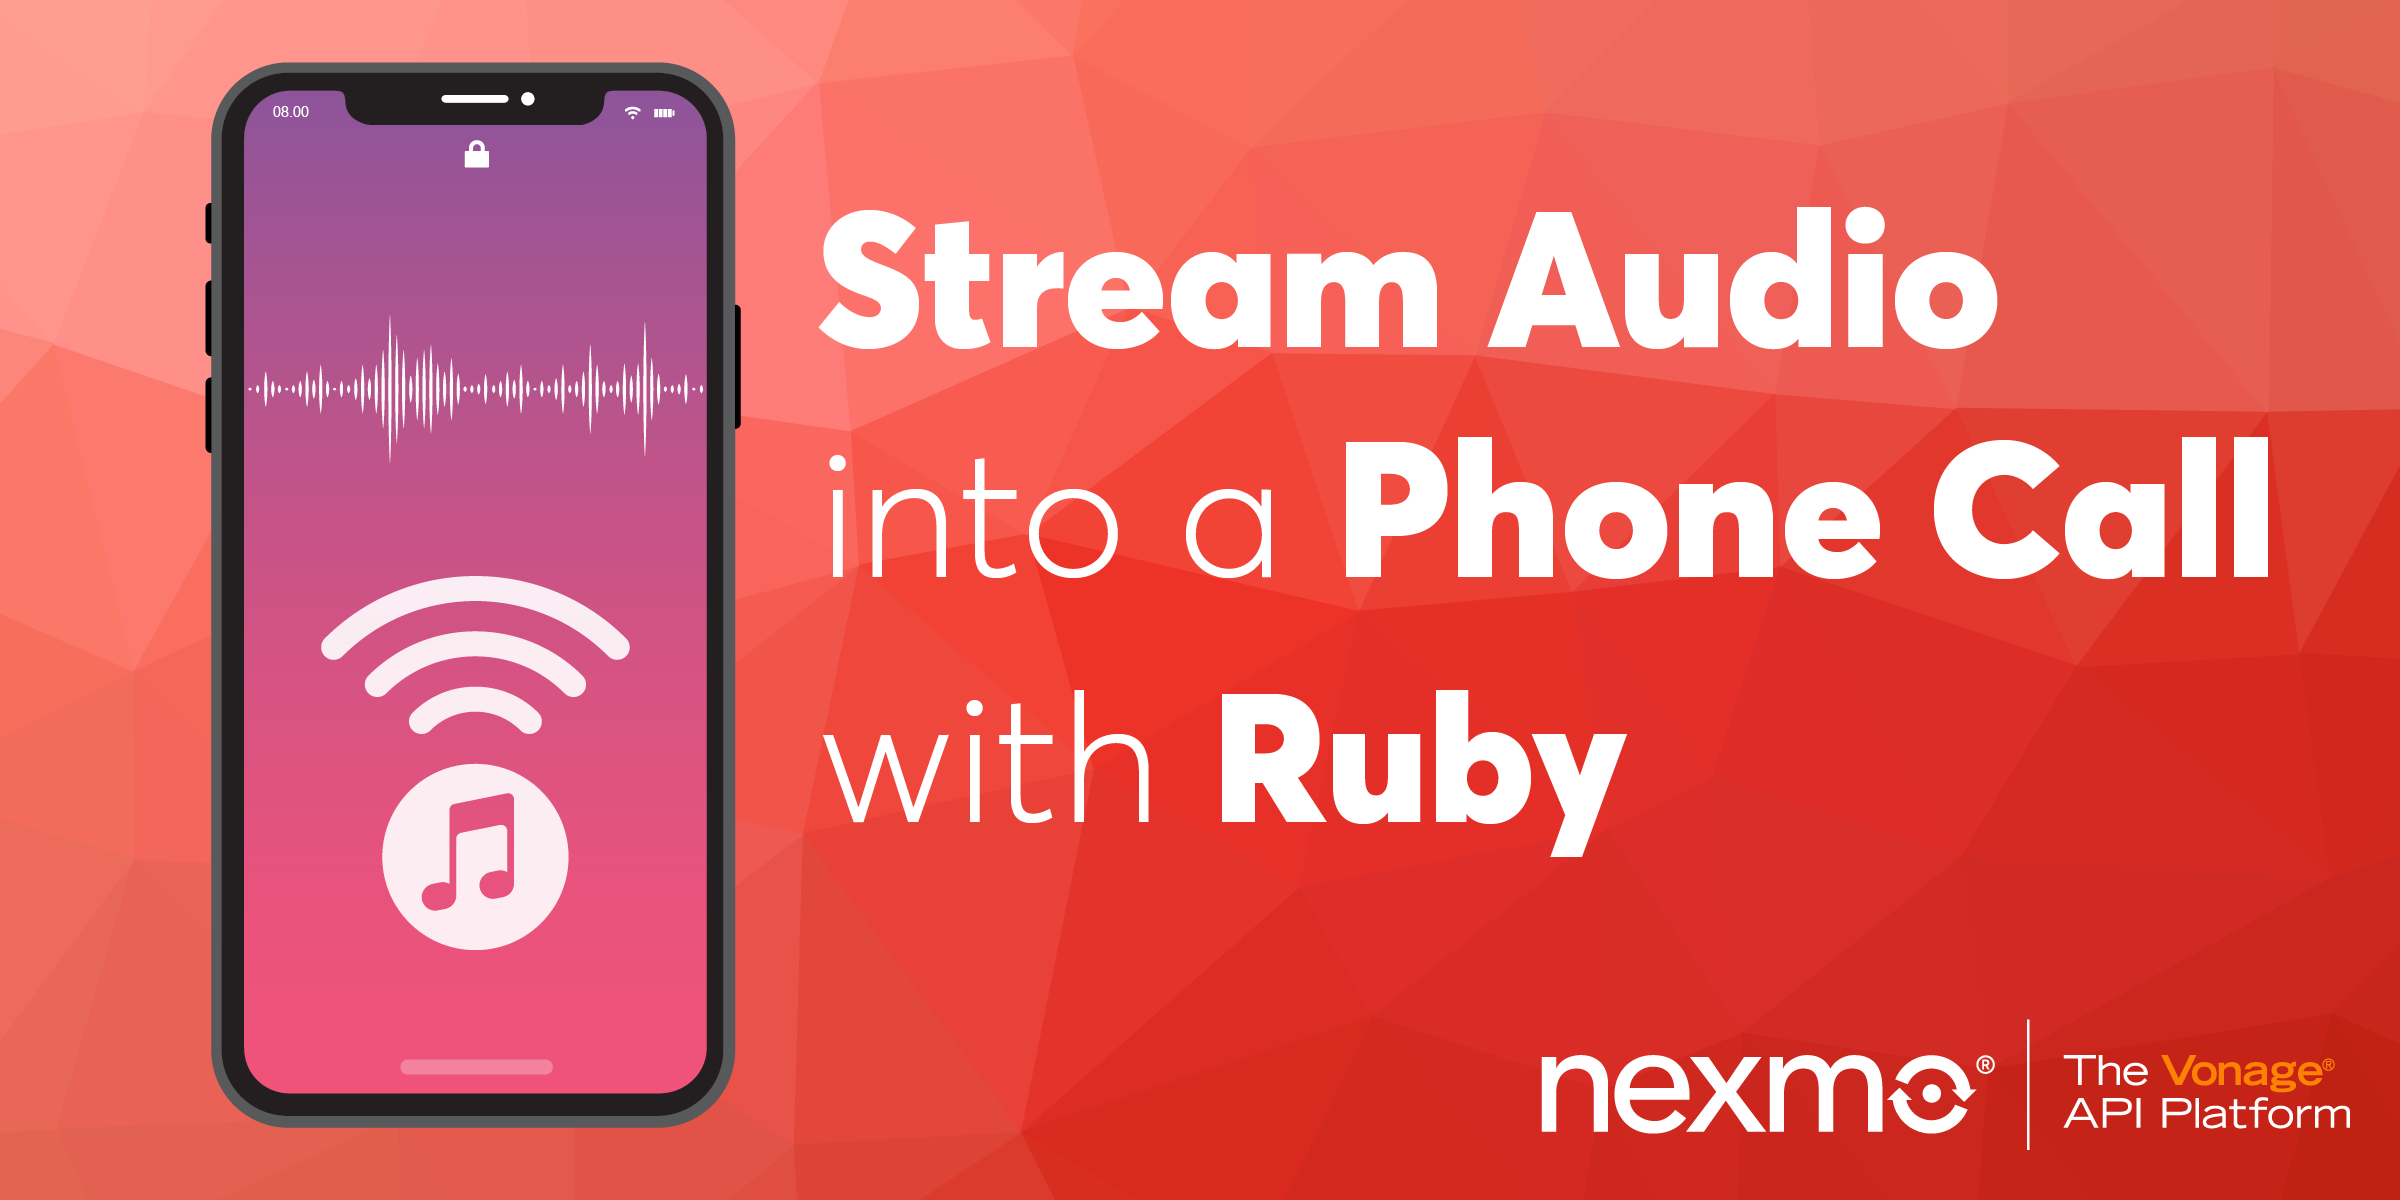 Play Streaming Audio to a Phone Call with Ruby